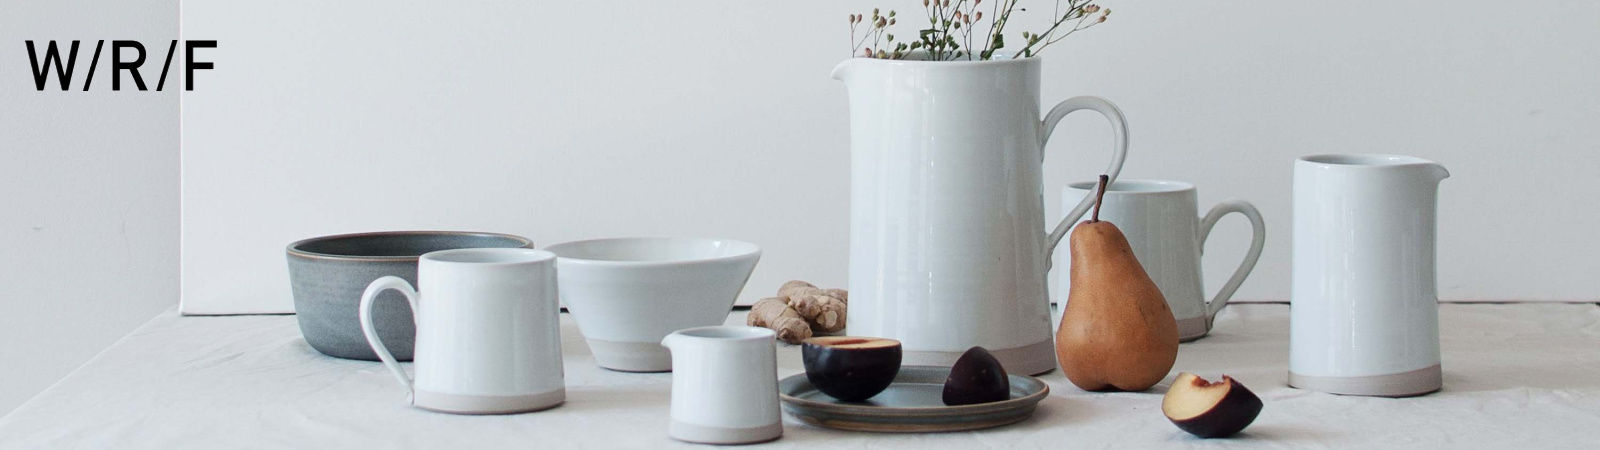 WRF Lab pottery and ceramics available online at Sportique.